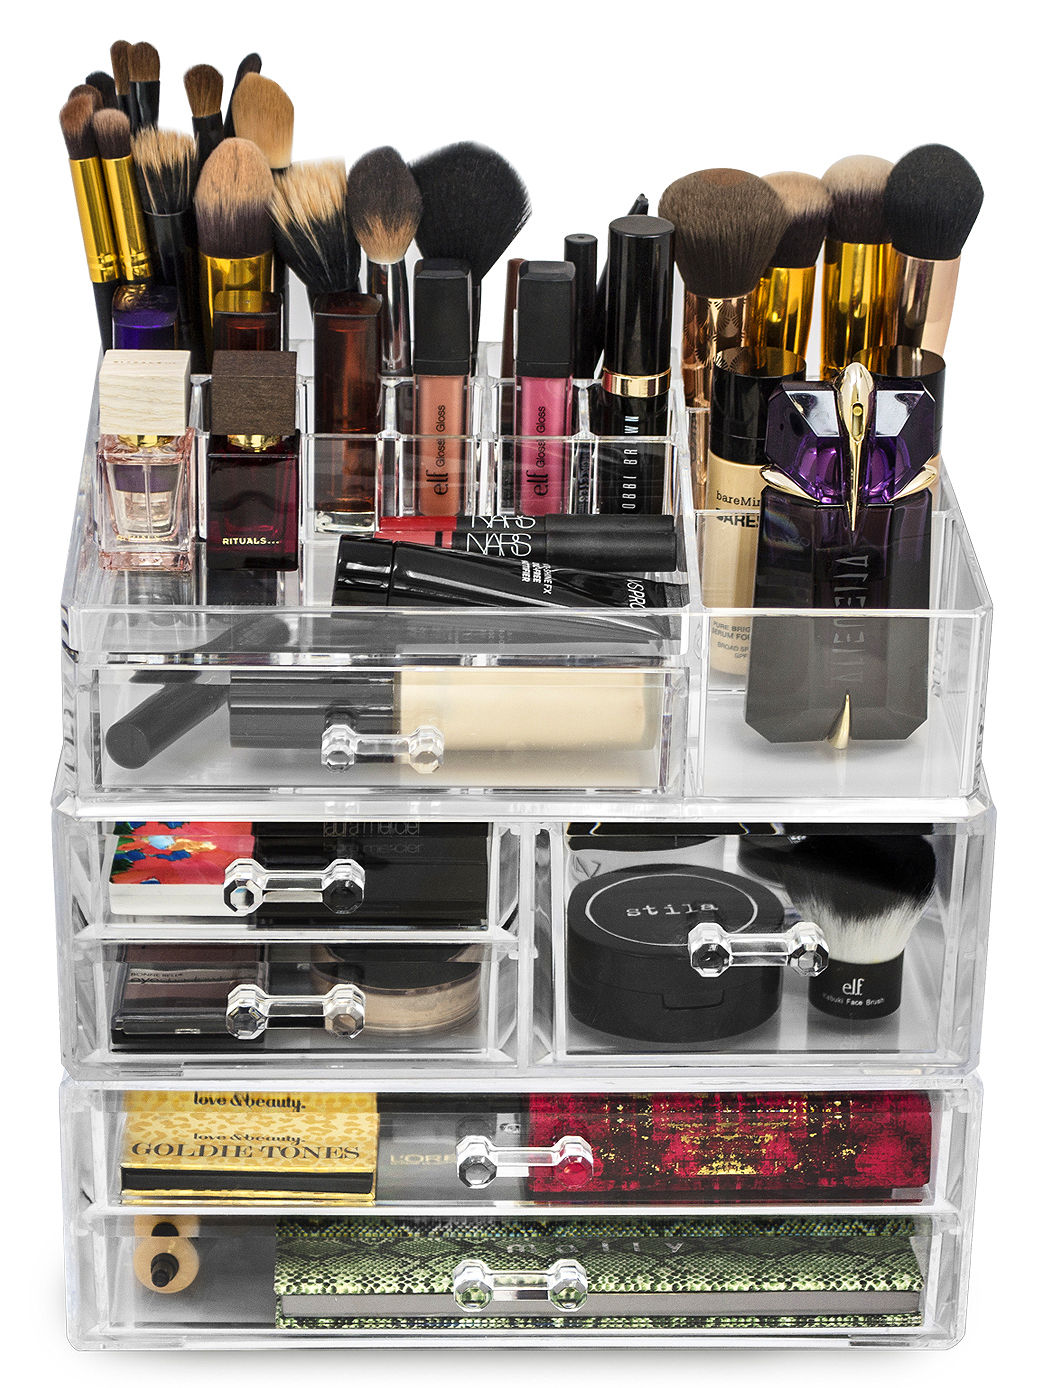 Superbe Sorbus Acrylic Cosmetics Makeup And Jewelry Storage Case Display Sets    Interlocking Drawers To Create Your